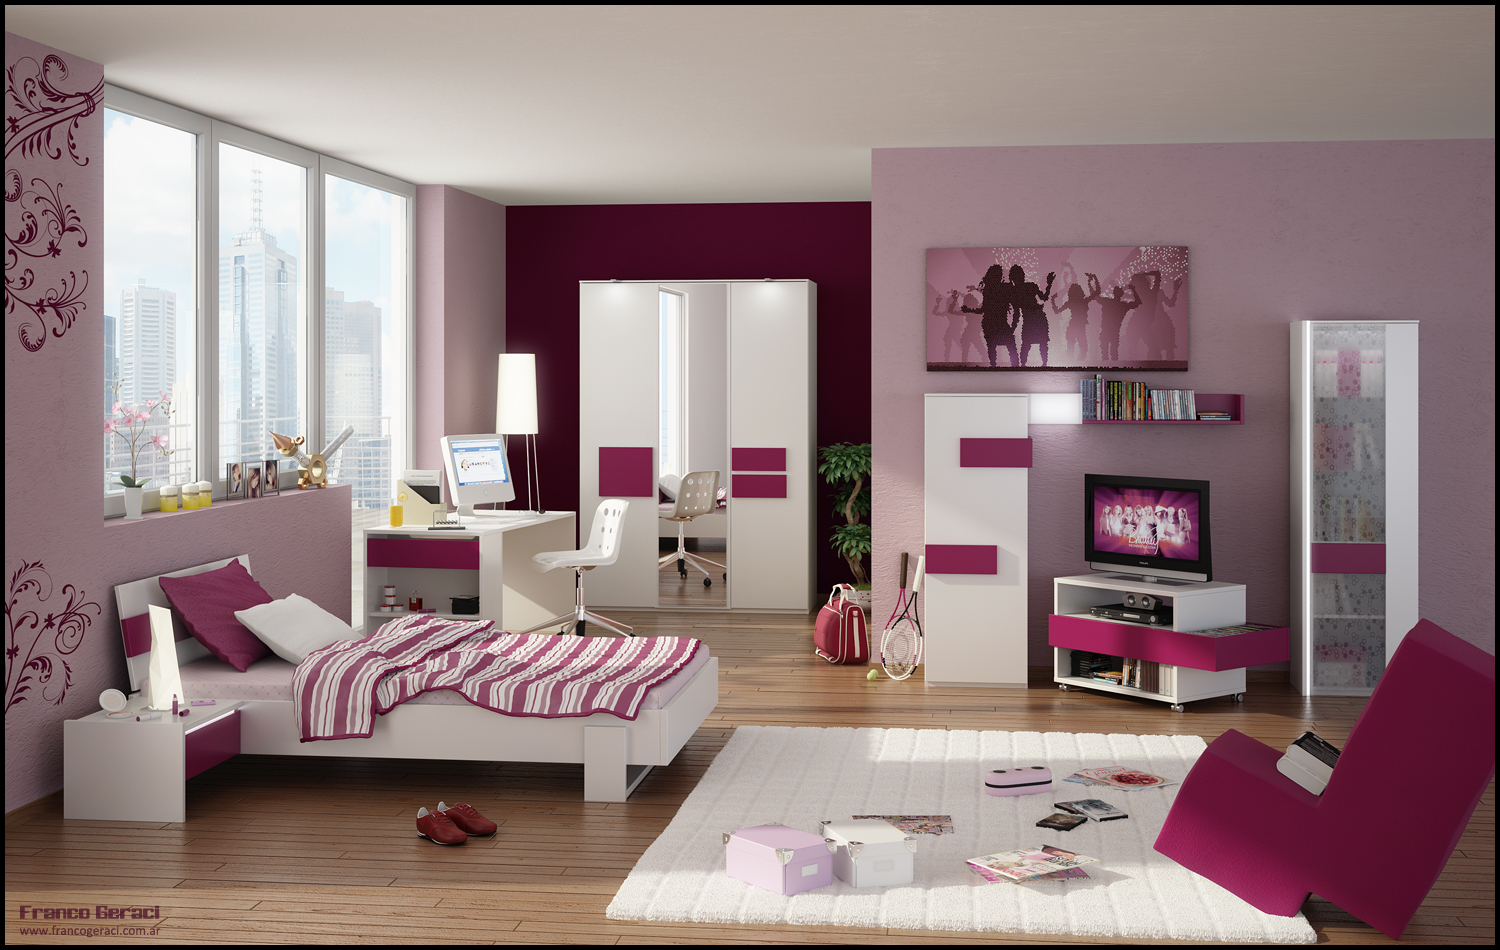 Teenage room designs - Girl teenage room designs ...